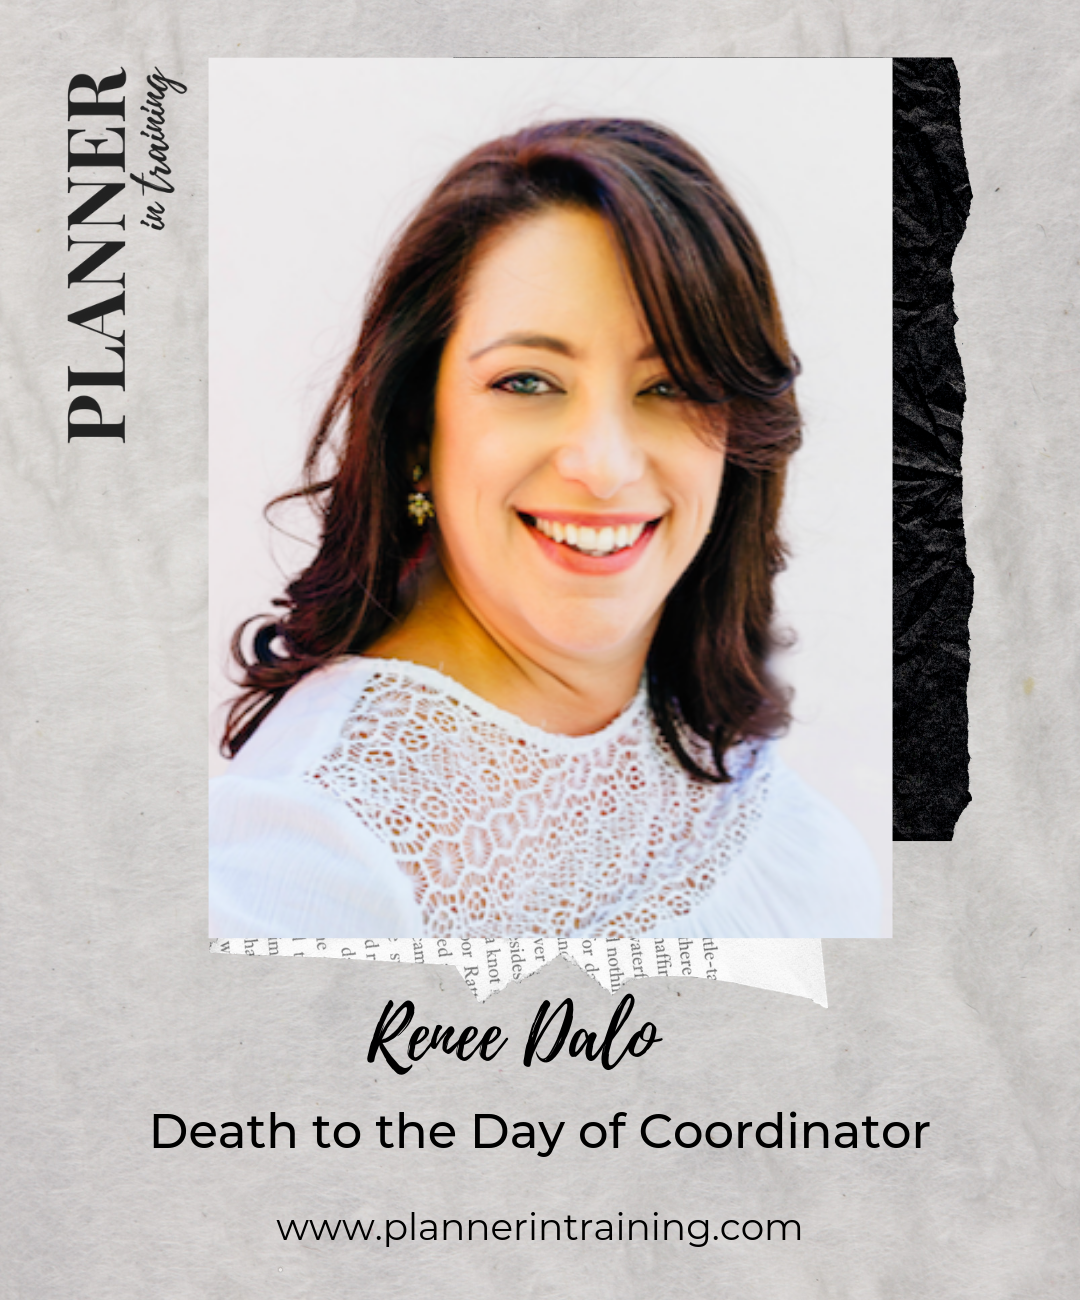 Renee Dalo planner in training podcast